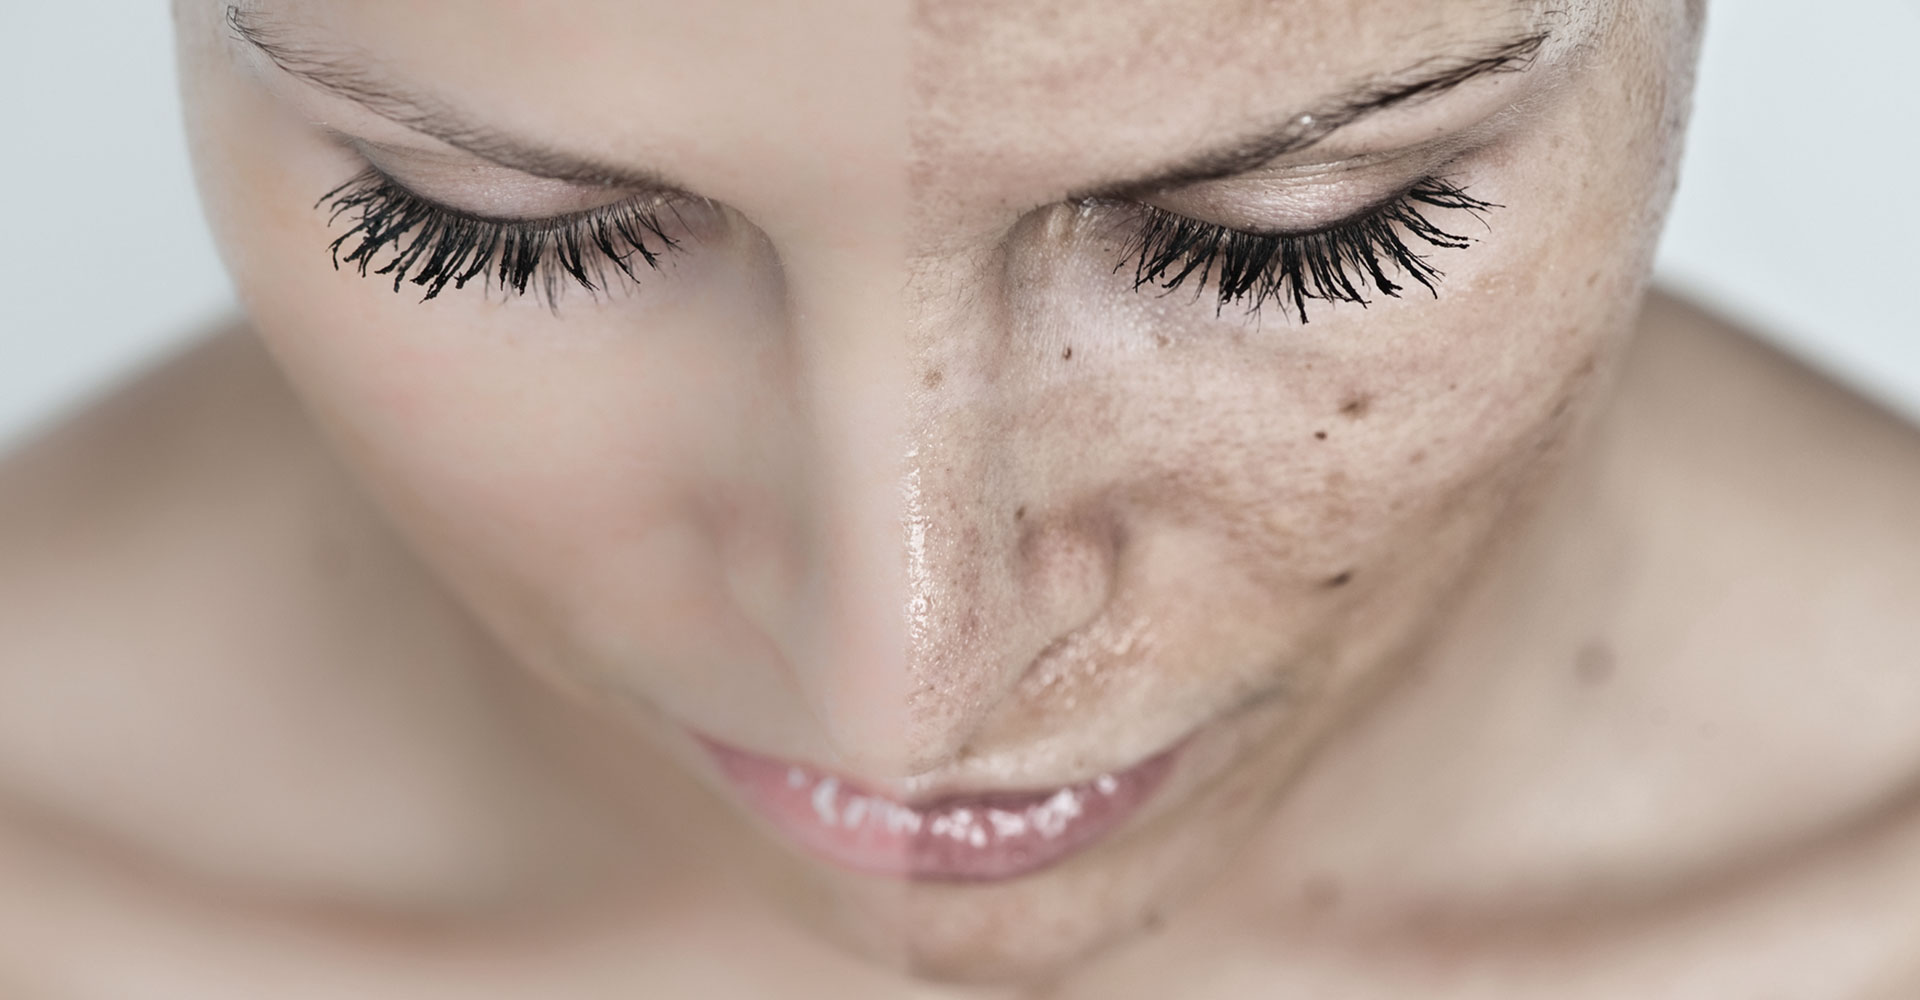 Have you got a dirty face? No, that's just my hyperpigmentation :( - Kelly Saynor